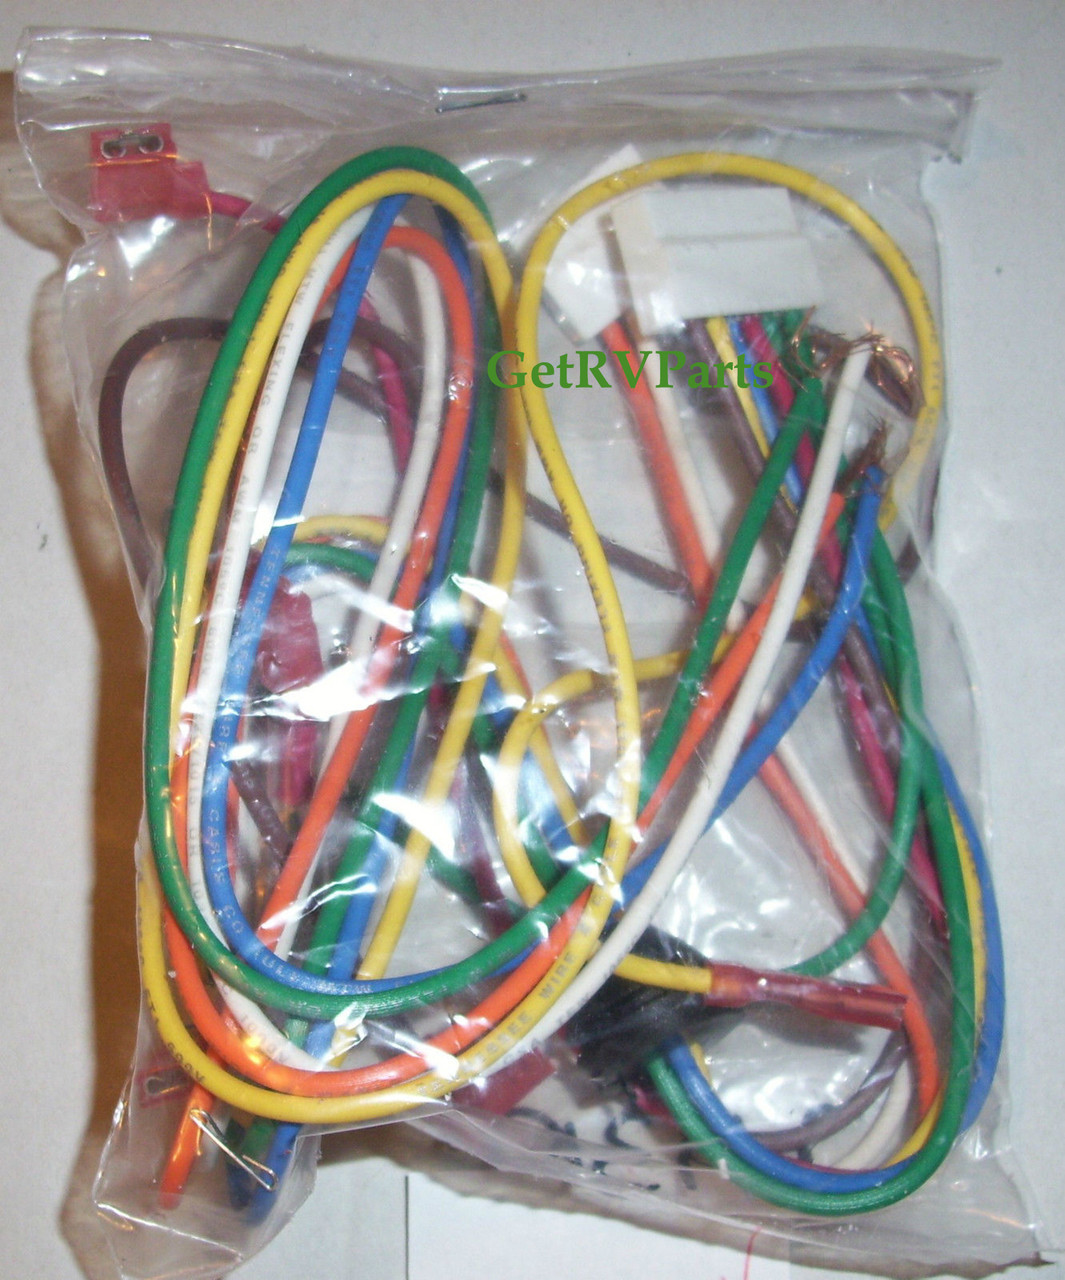 atwood water 93315 heater wire harness was 93191 Water Heater Wire Colors